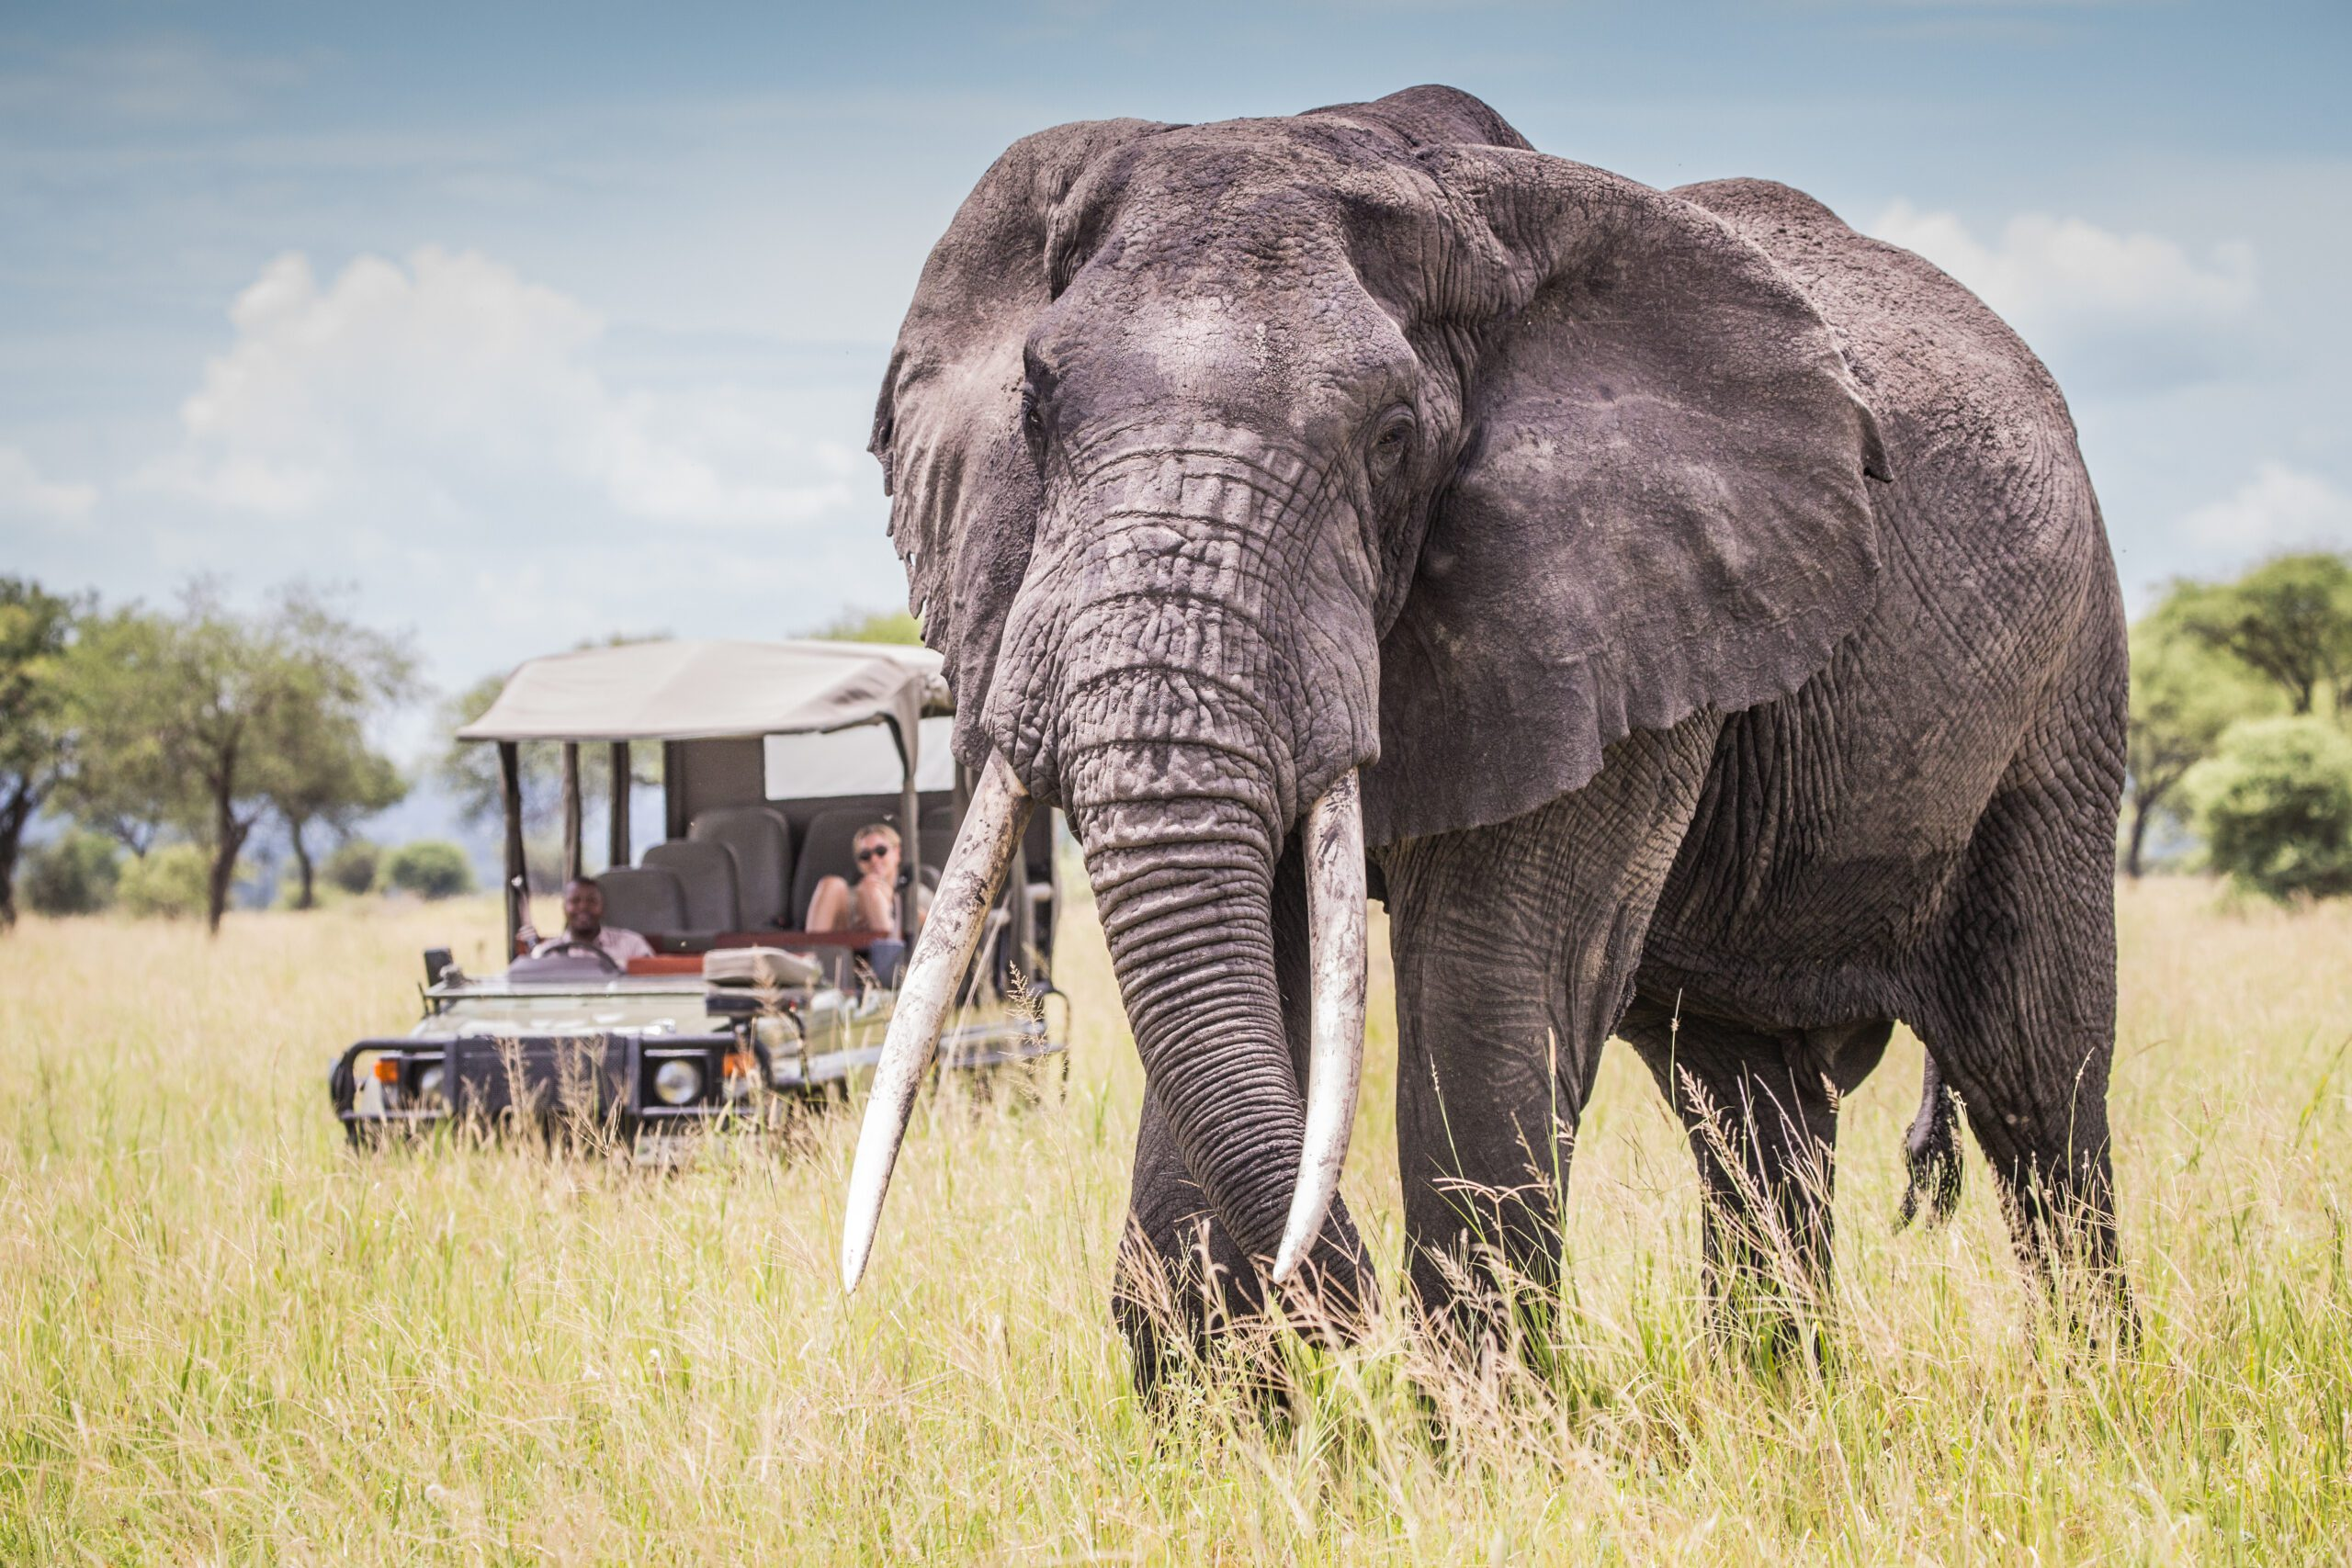 big tusked elephant followed by an open air safari vehicle